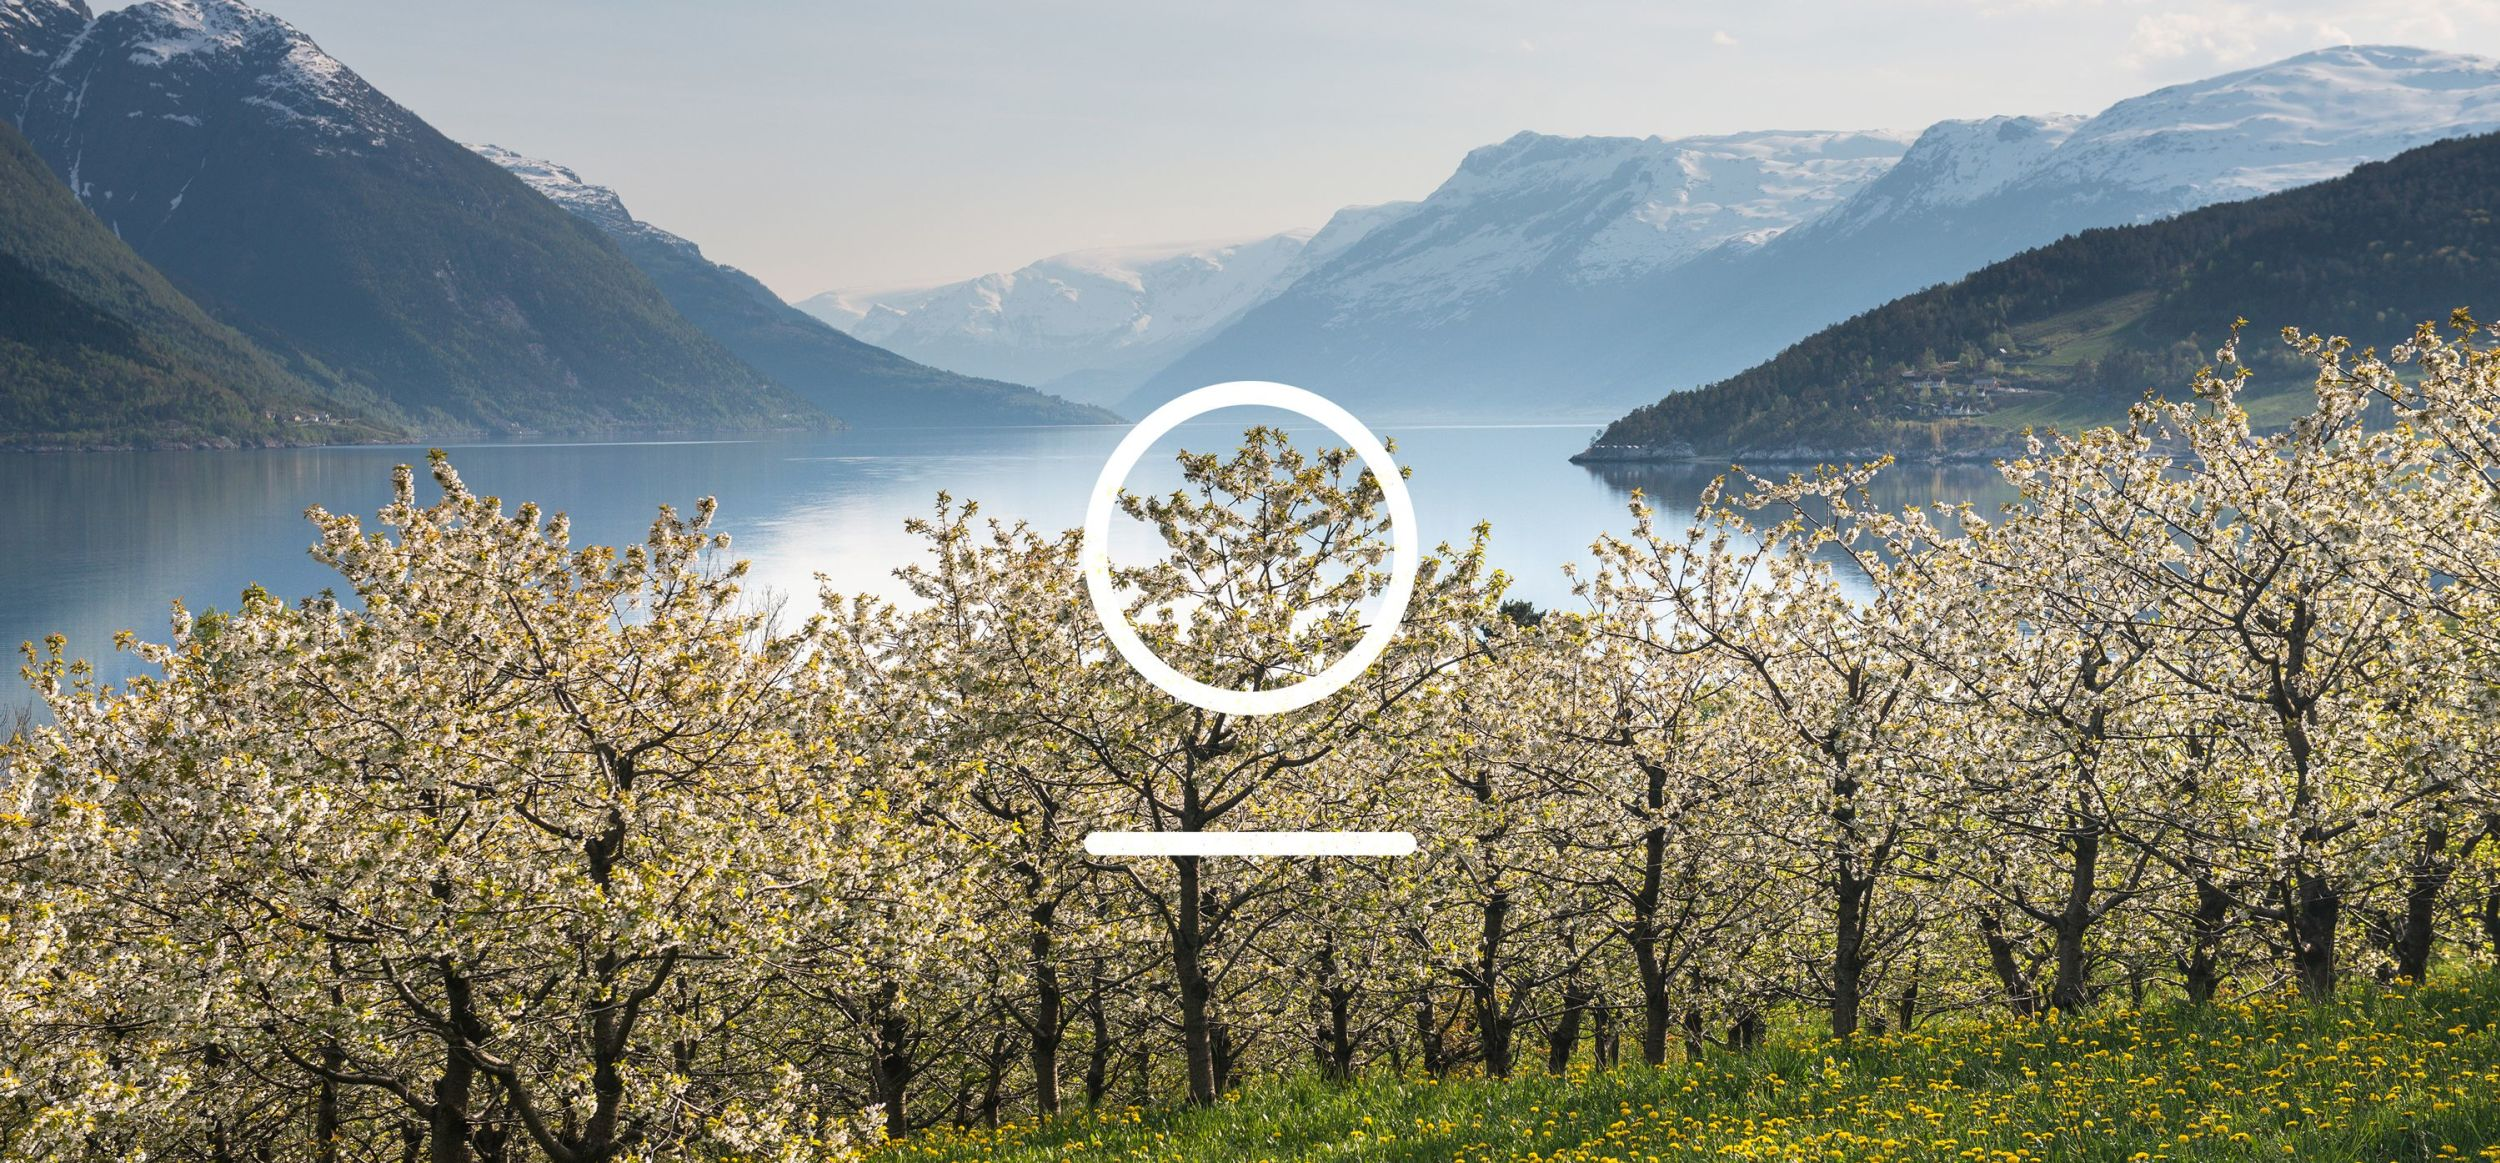 Apple blossoms in the Hardanger fjord. Photo: Sverre Hjørnevik, FjordNorway.no